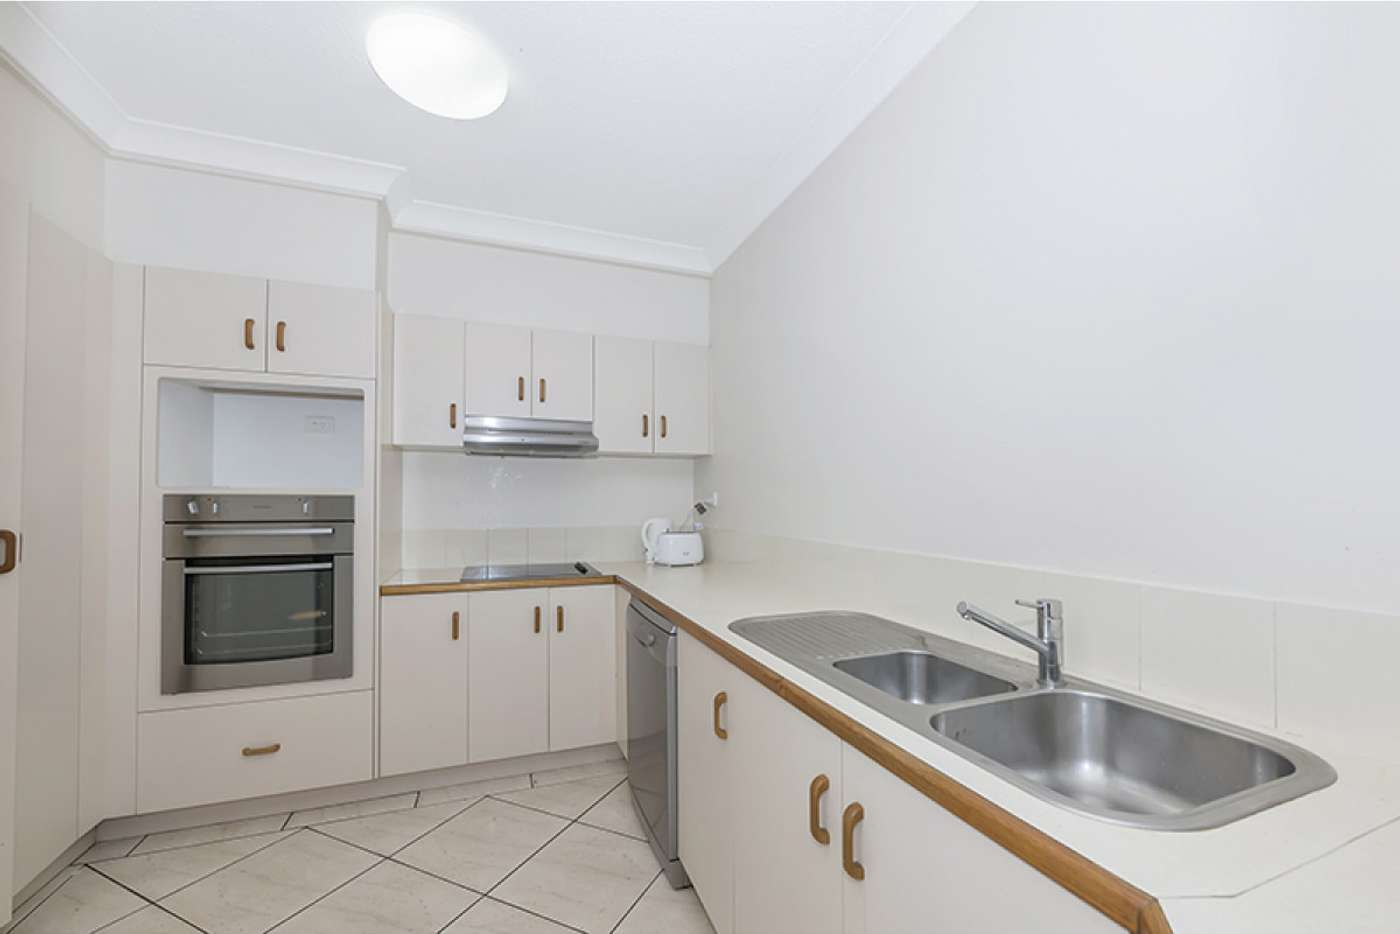 Sixth view of Homely apartment listing, 1A/7 The Strand, North Ward QLD 4810